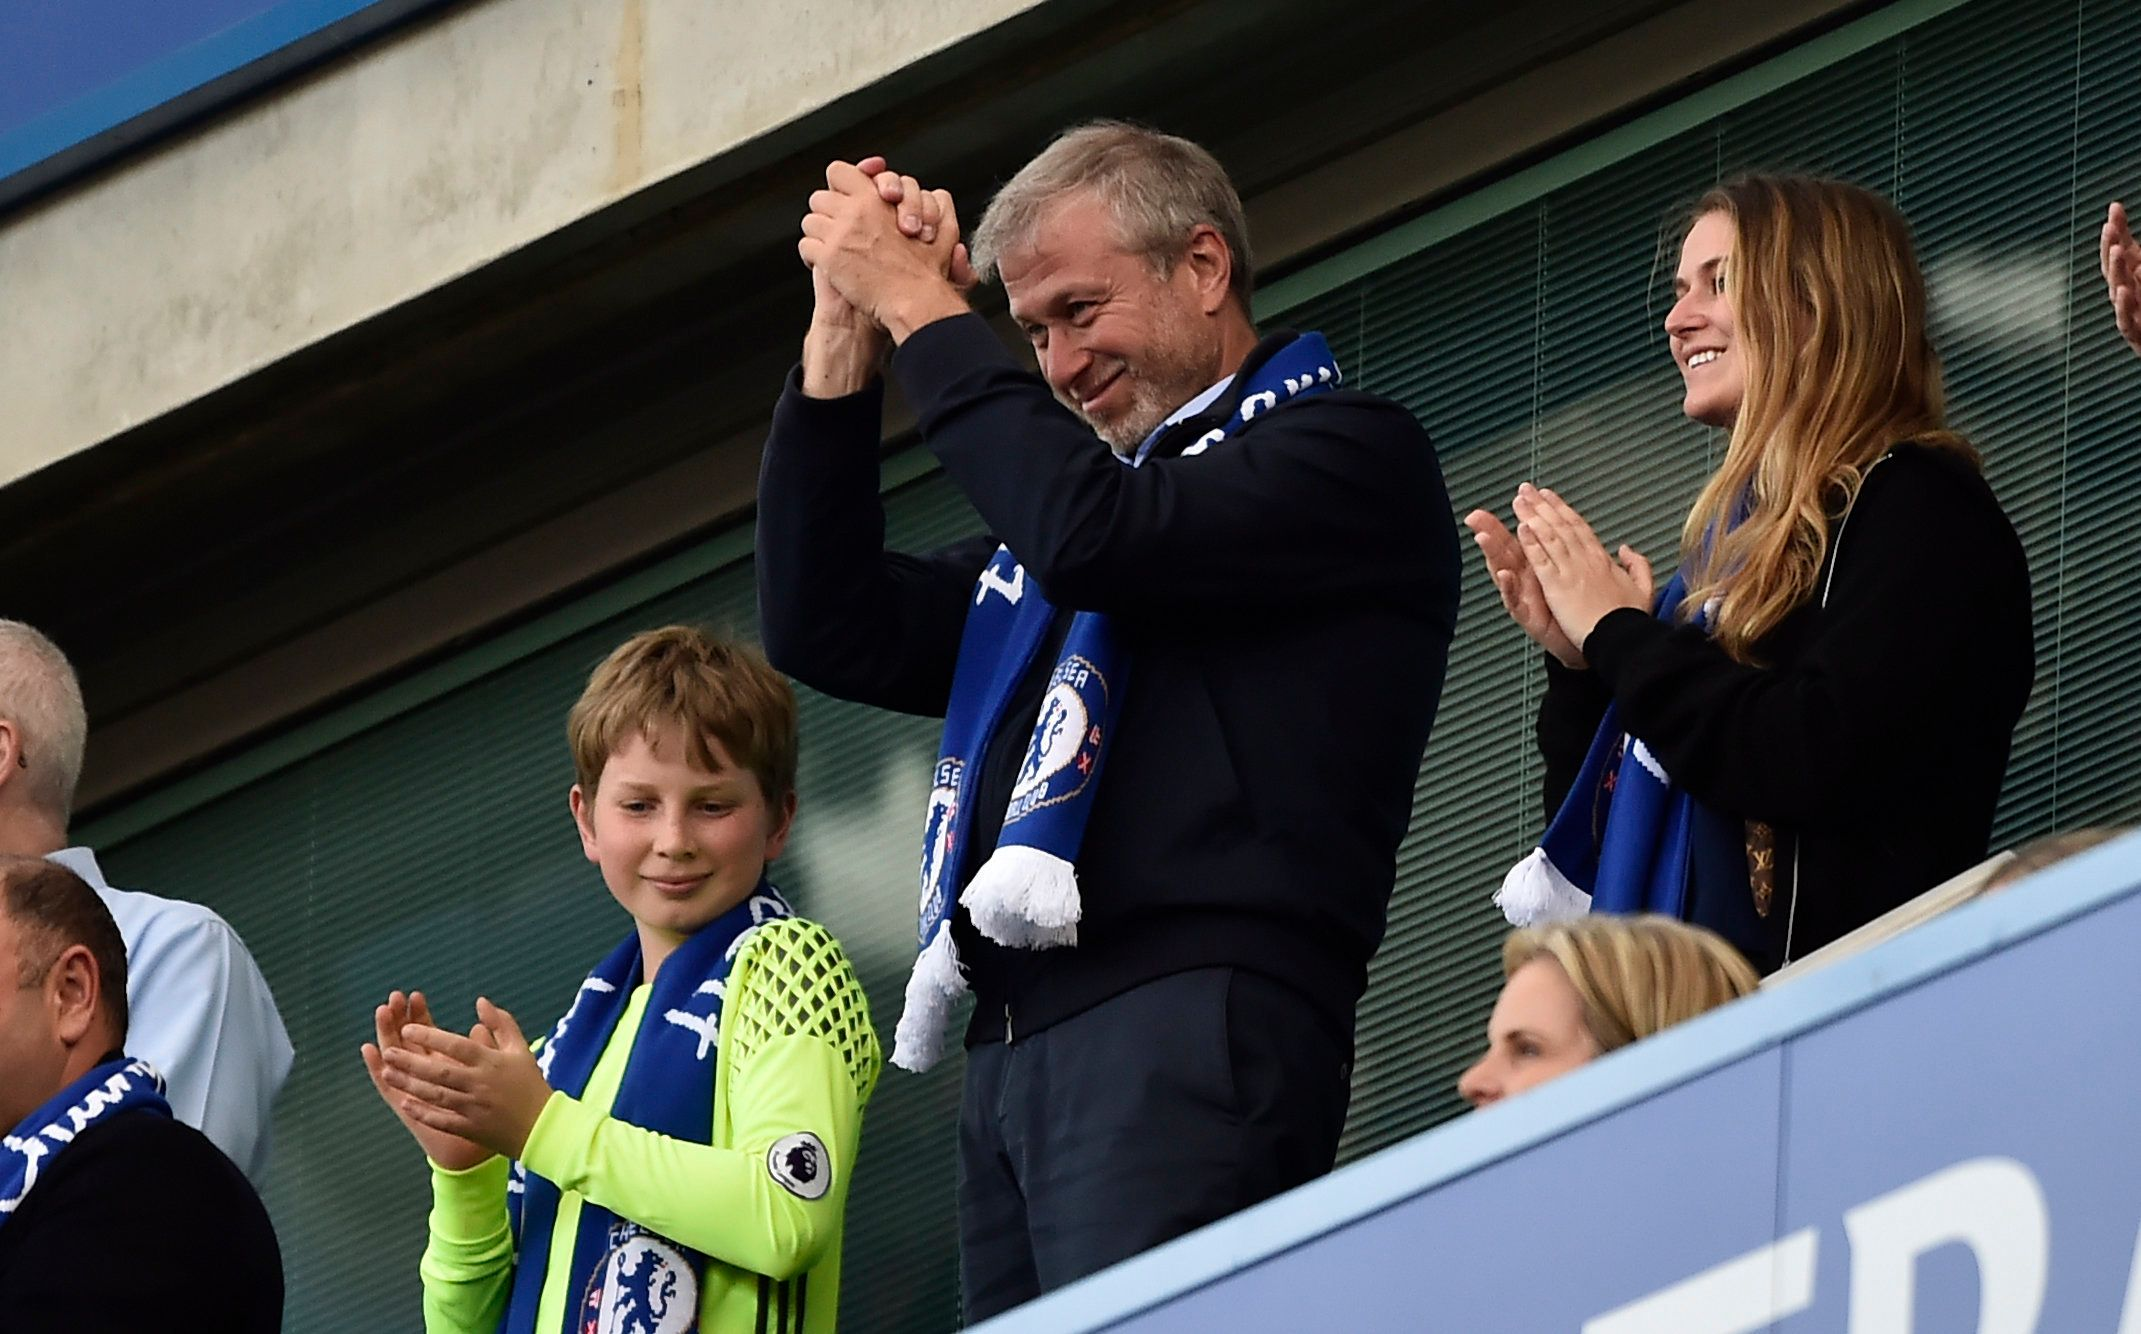 Roman Abramovich granted Israeli citizenship after being unable to renew United Kingdom visa